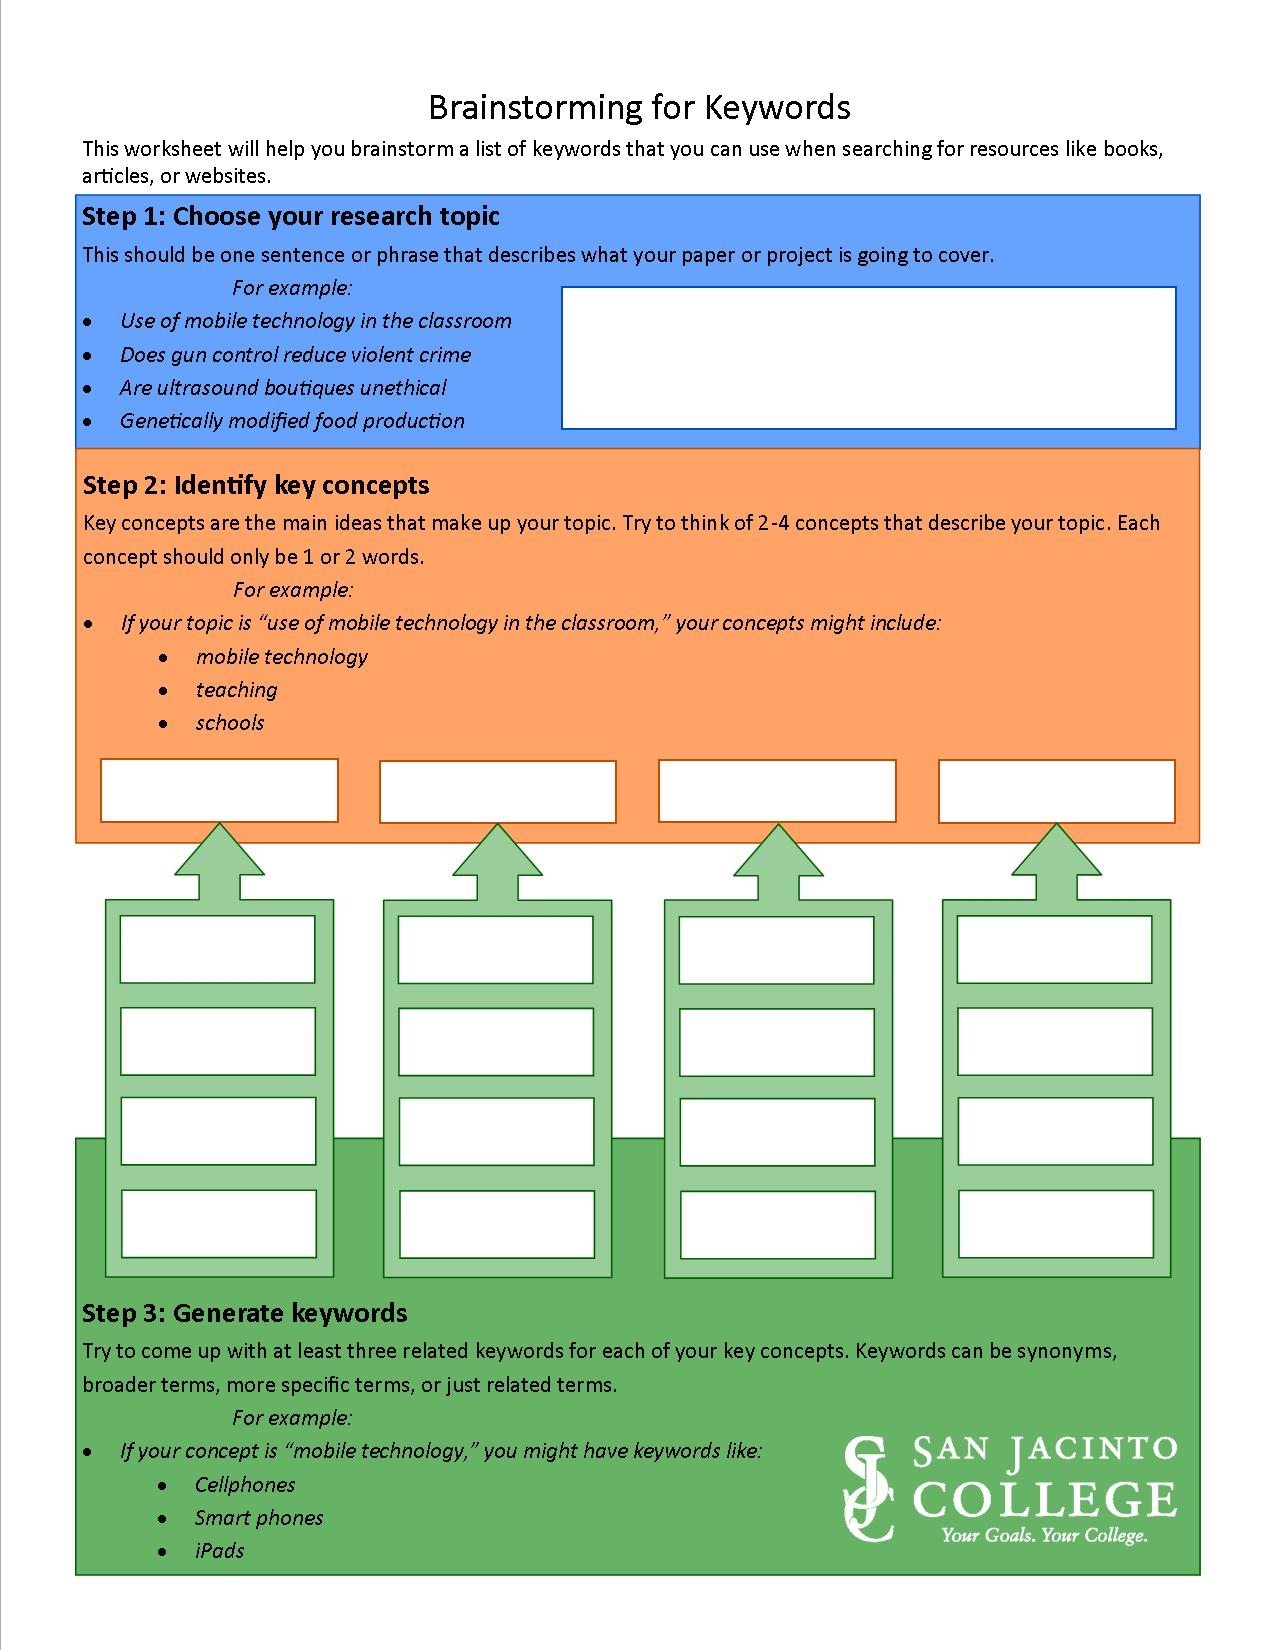 Worksheet on brainstorming keywords